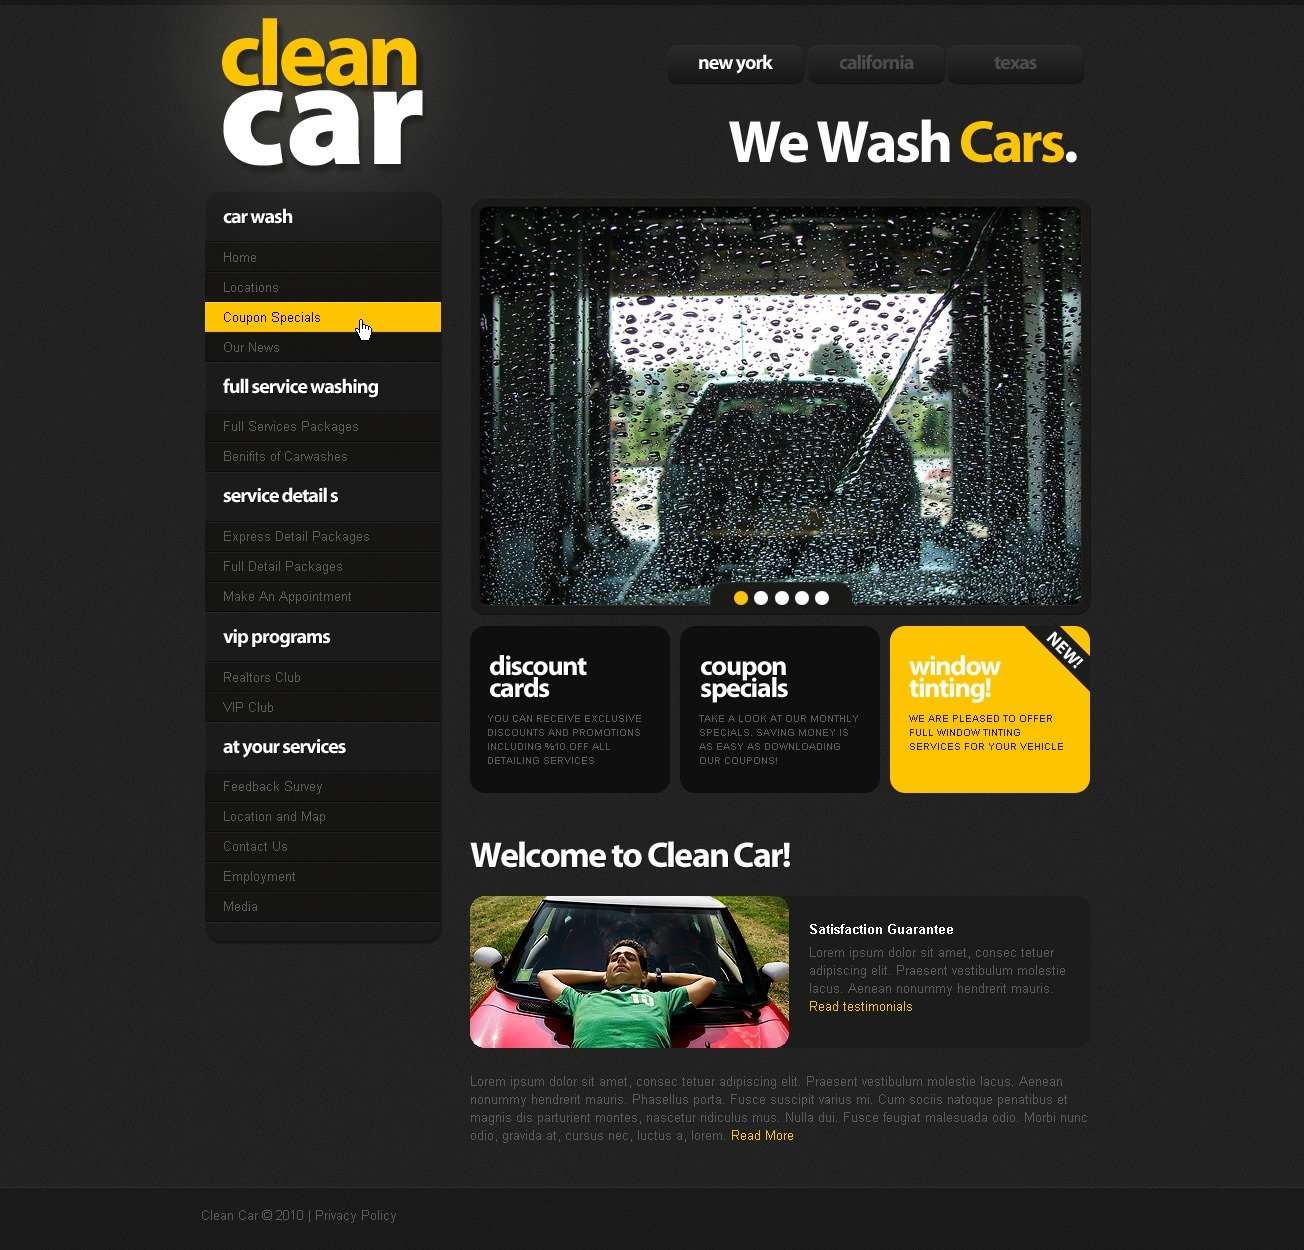 The Clean Car Wash Center PSD Design 54072, one of the best PSD templates of its kind (cars, wide, maintenance services, jquery), also known as clean car wash center PSD template, washing PSD template, staff PSD template, cleaning PSD template, oil PSD template, lube salon PSD template, wheel PSD template, covers PSD template, rinsing PSD template, water PSD template, drying PSD template, soap PSD template, polish PSD template, chassis PSD template, dirty PSD template, dashboard PSD template, hoovering PSD template, seats PSD template, cleaning PSD template, brushes PSD template, service PSD template, coupons PSD template, fund-raising and related with clean car wash center, washing, staff, cleaning, oil, lube salon, wheel, covers, rinsing, water, drying, soap, polish, chassis, dirty, dashboard, hoovering, seats, cleaning, brushes, service, coupons, fund-raising, etc.